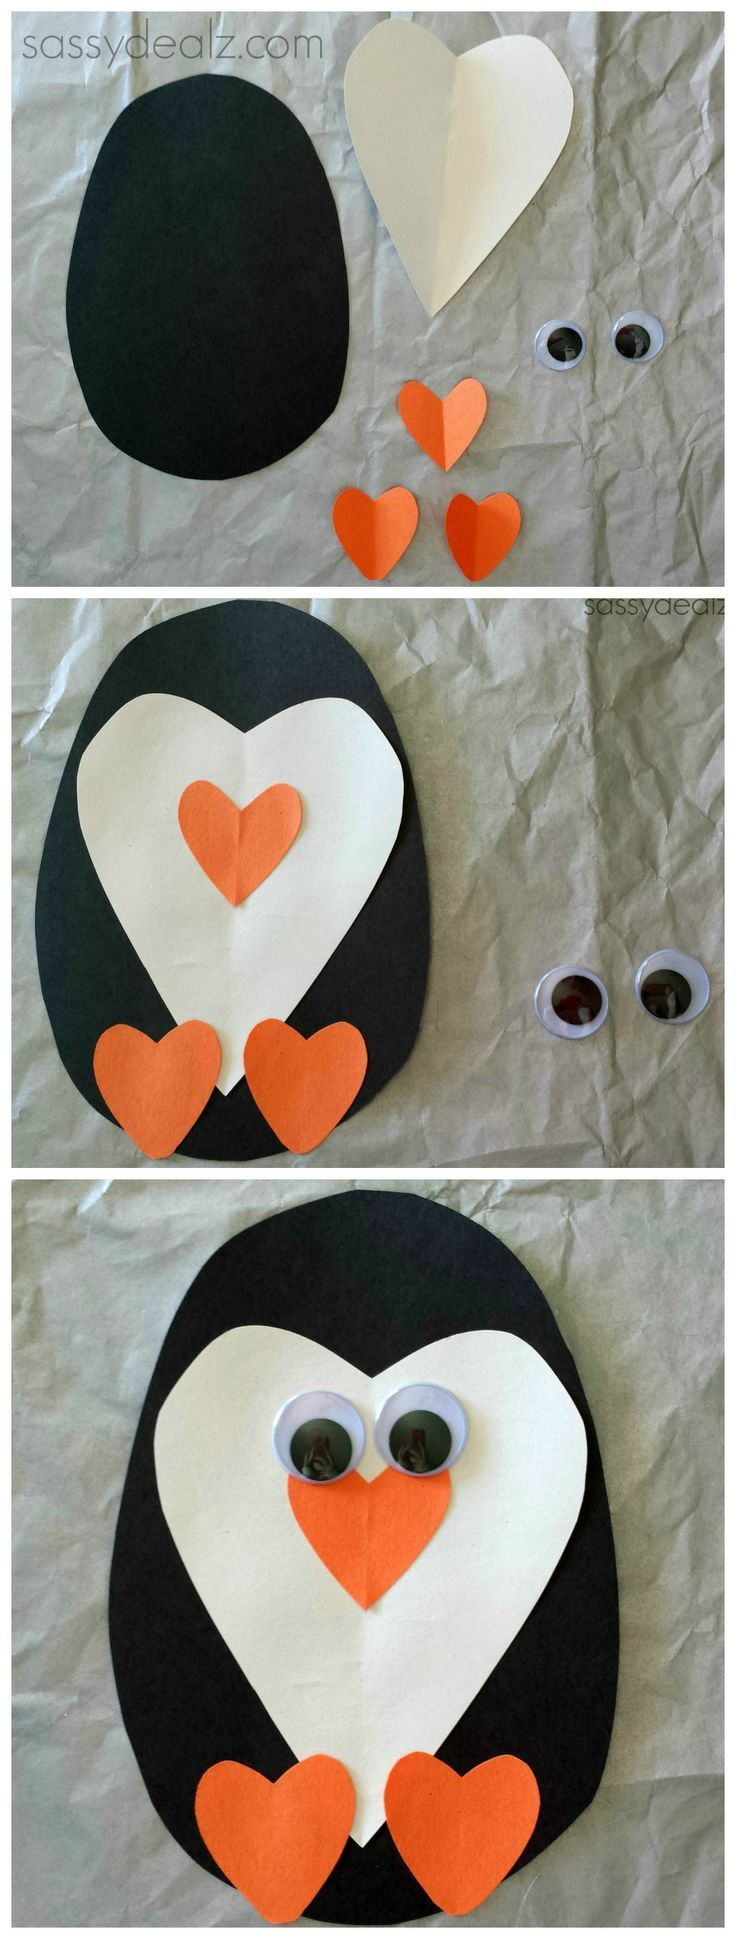 Paper Heart Penguin Craft For Kids #Valentines craft #DIY heart animal art…